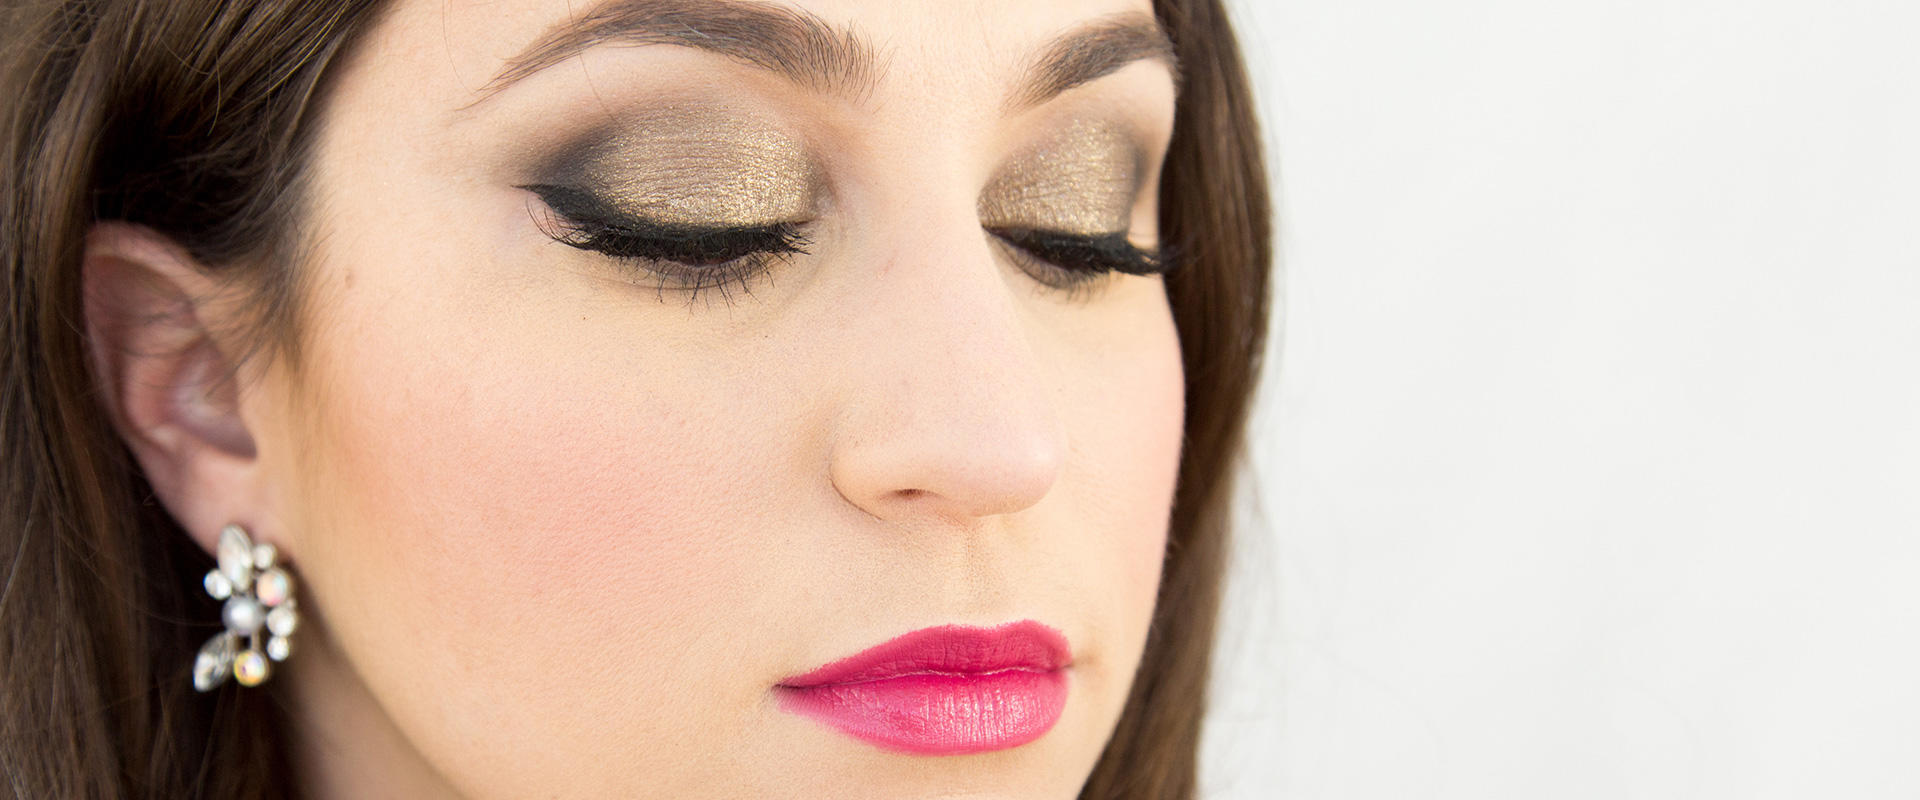 How to do simple party makeup at home?